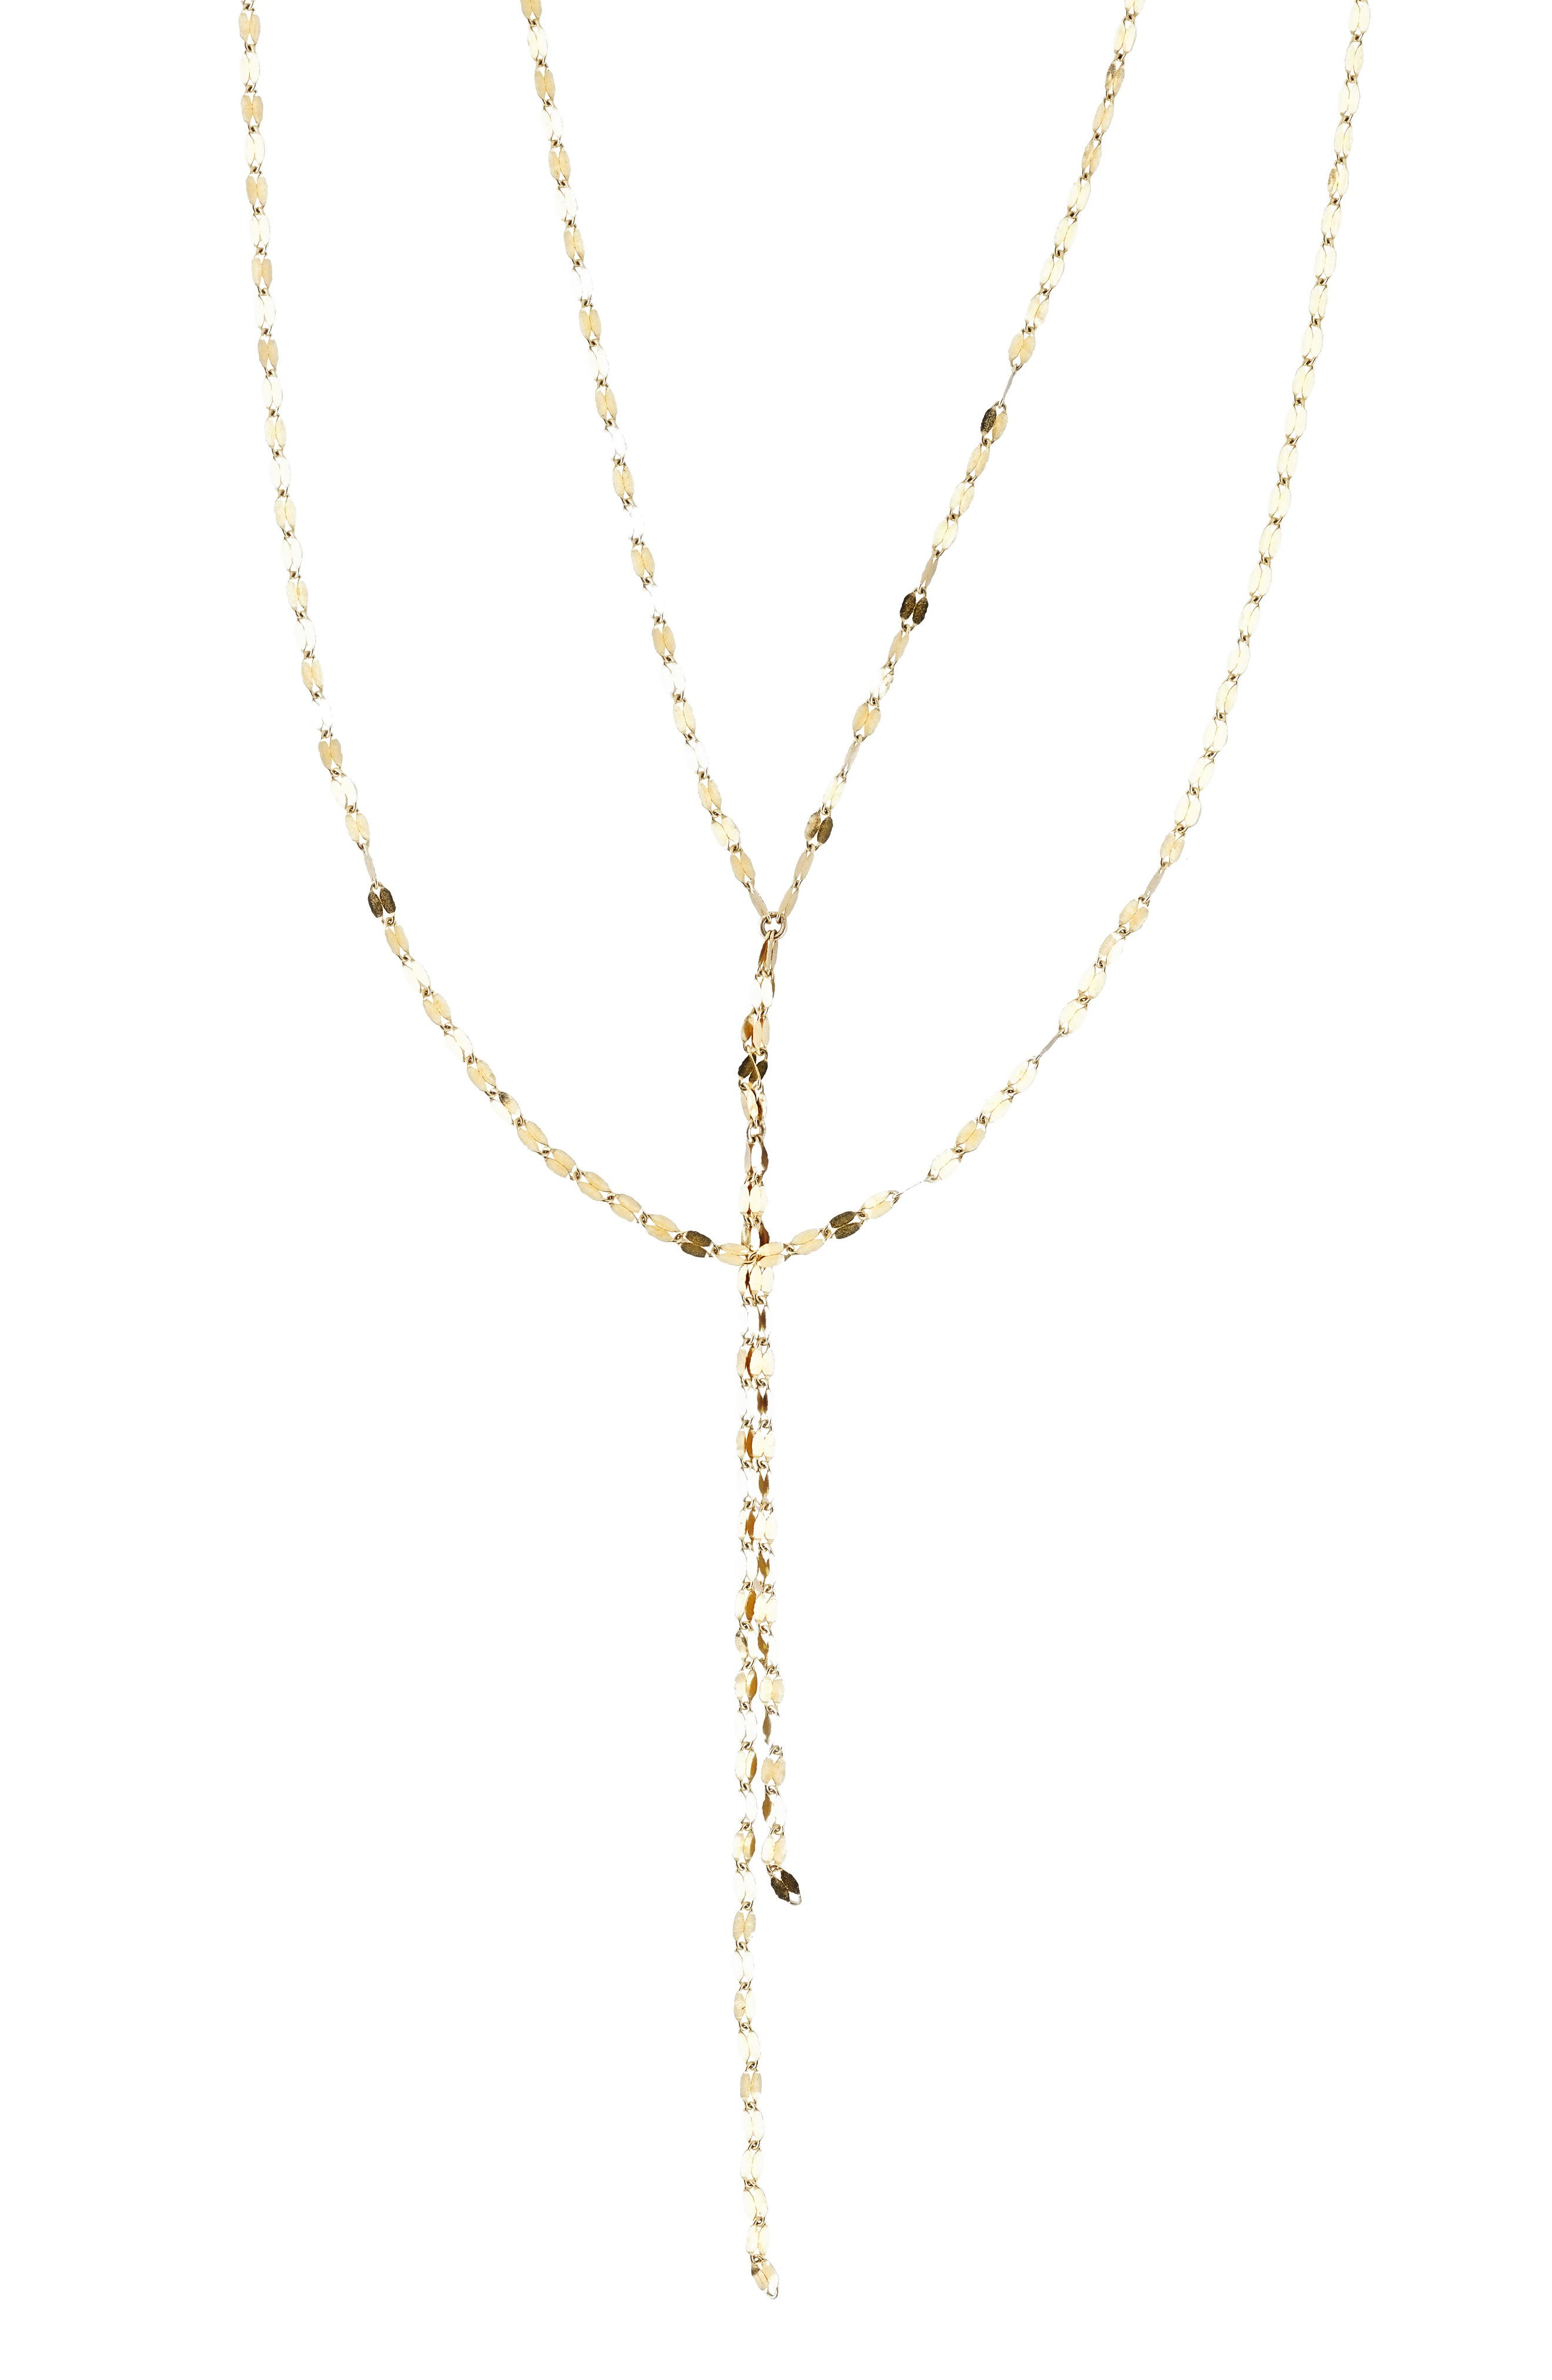 Multistrand Necklace,                             Main thumbnail 1, color,                             710